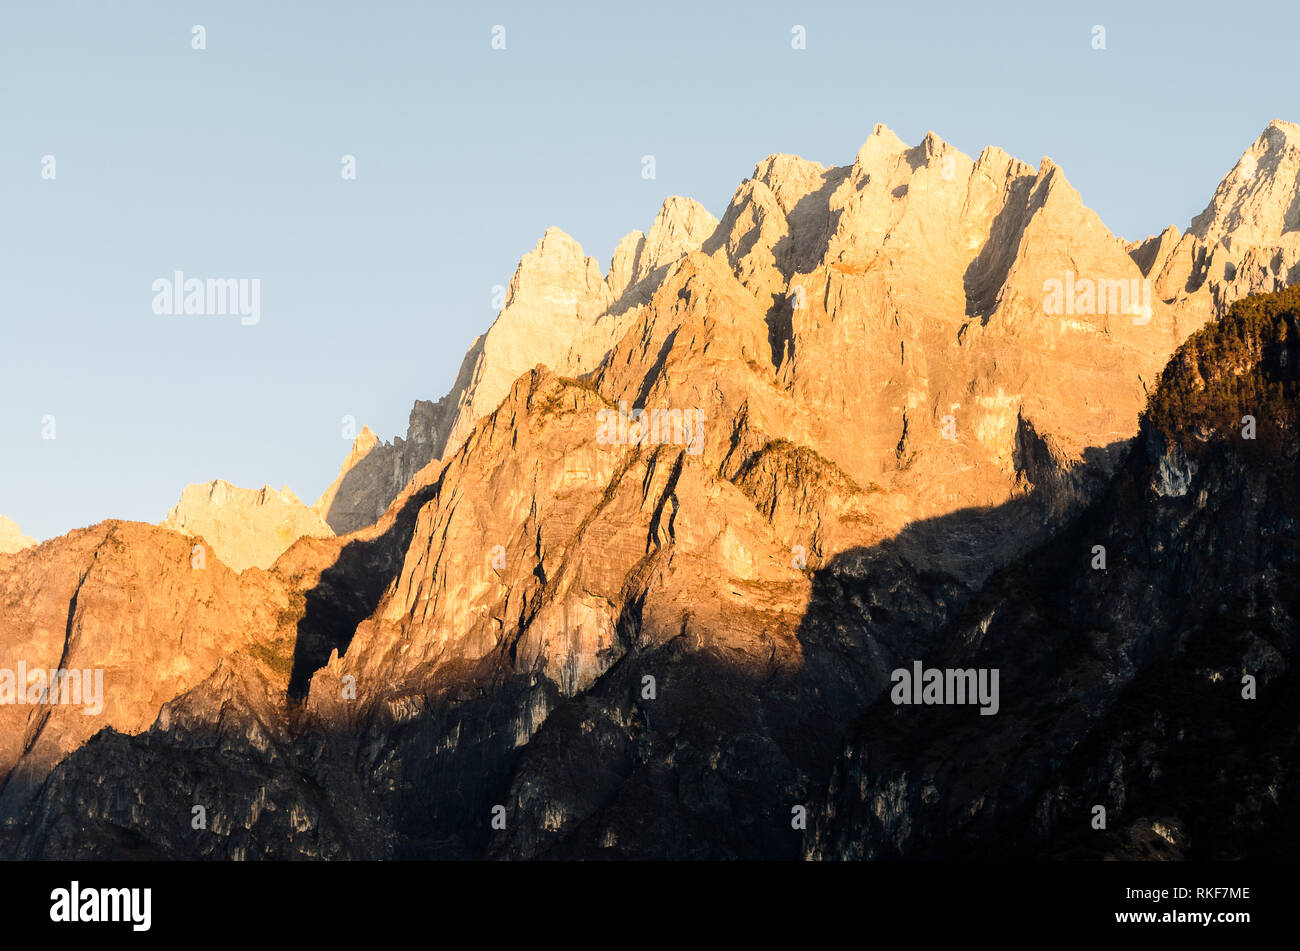 Sunset over the jagged mountain peaks of Tiger Leaping Gorge, Yunnan, China - Stock Image